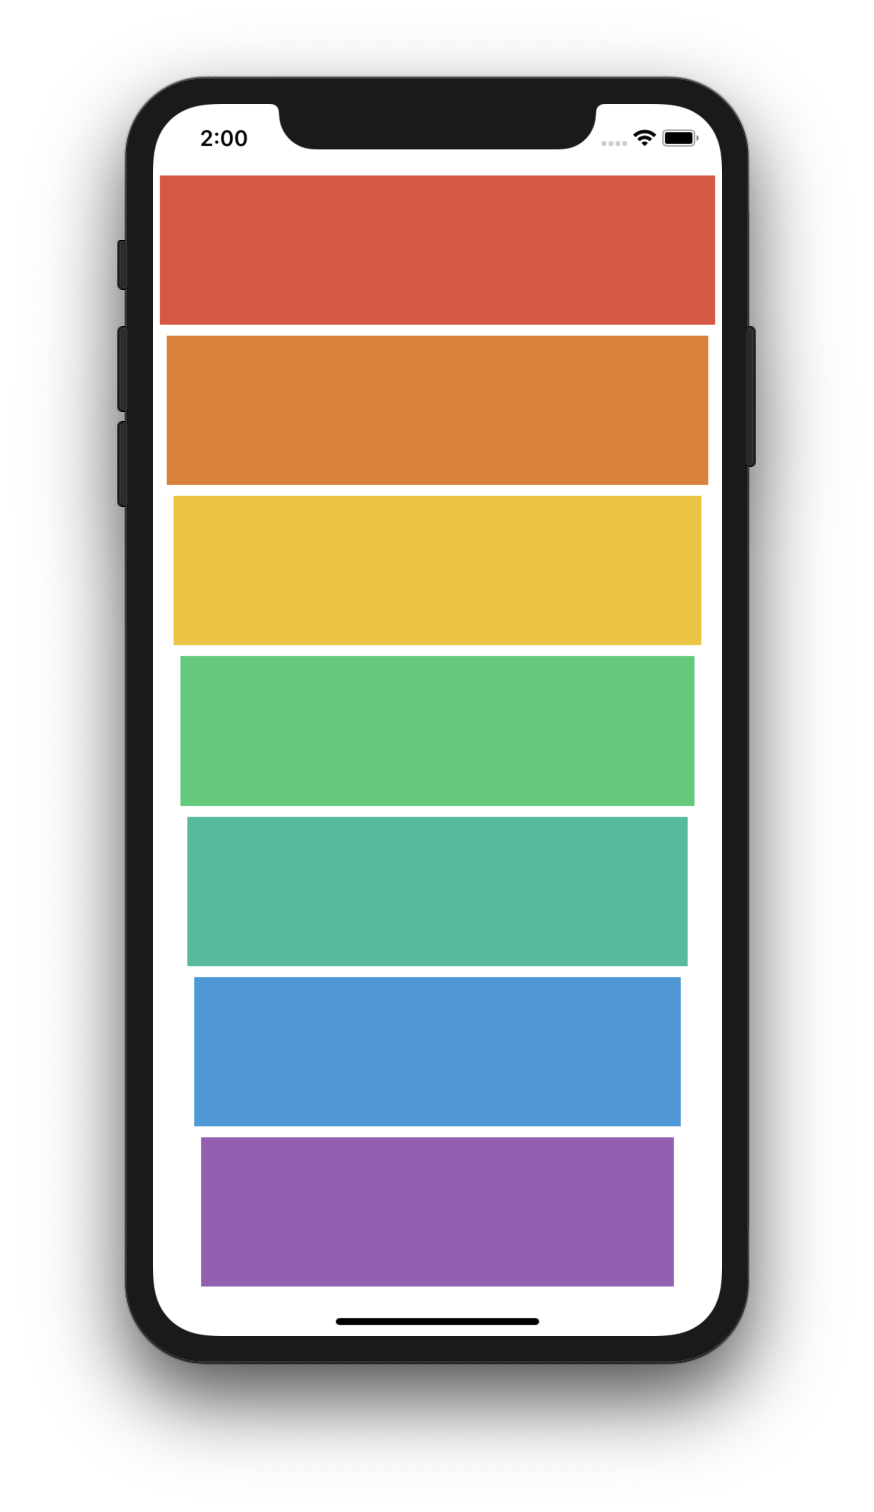 Xylophone - A single page application that plays tunes upon pressing a color.